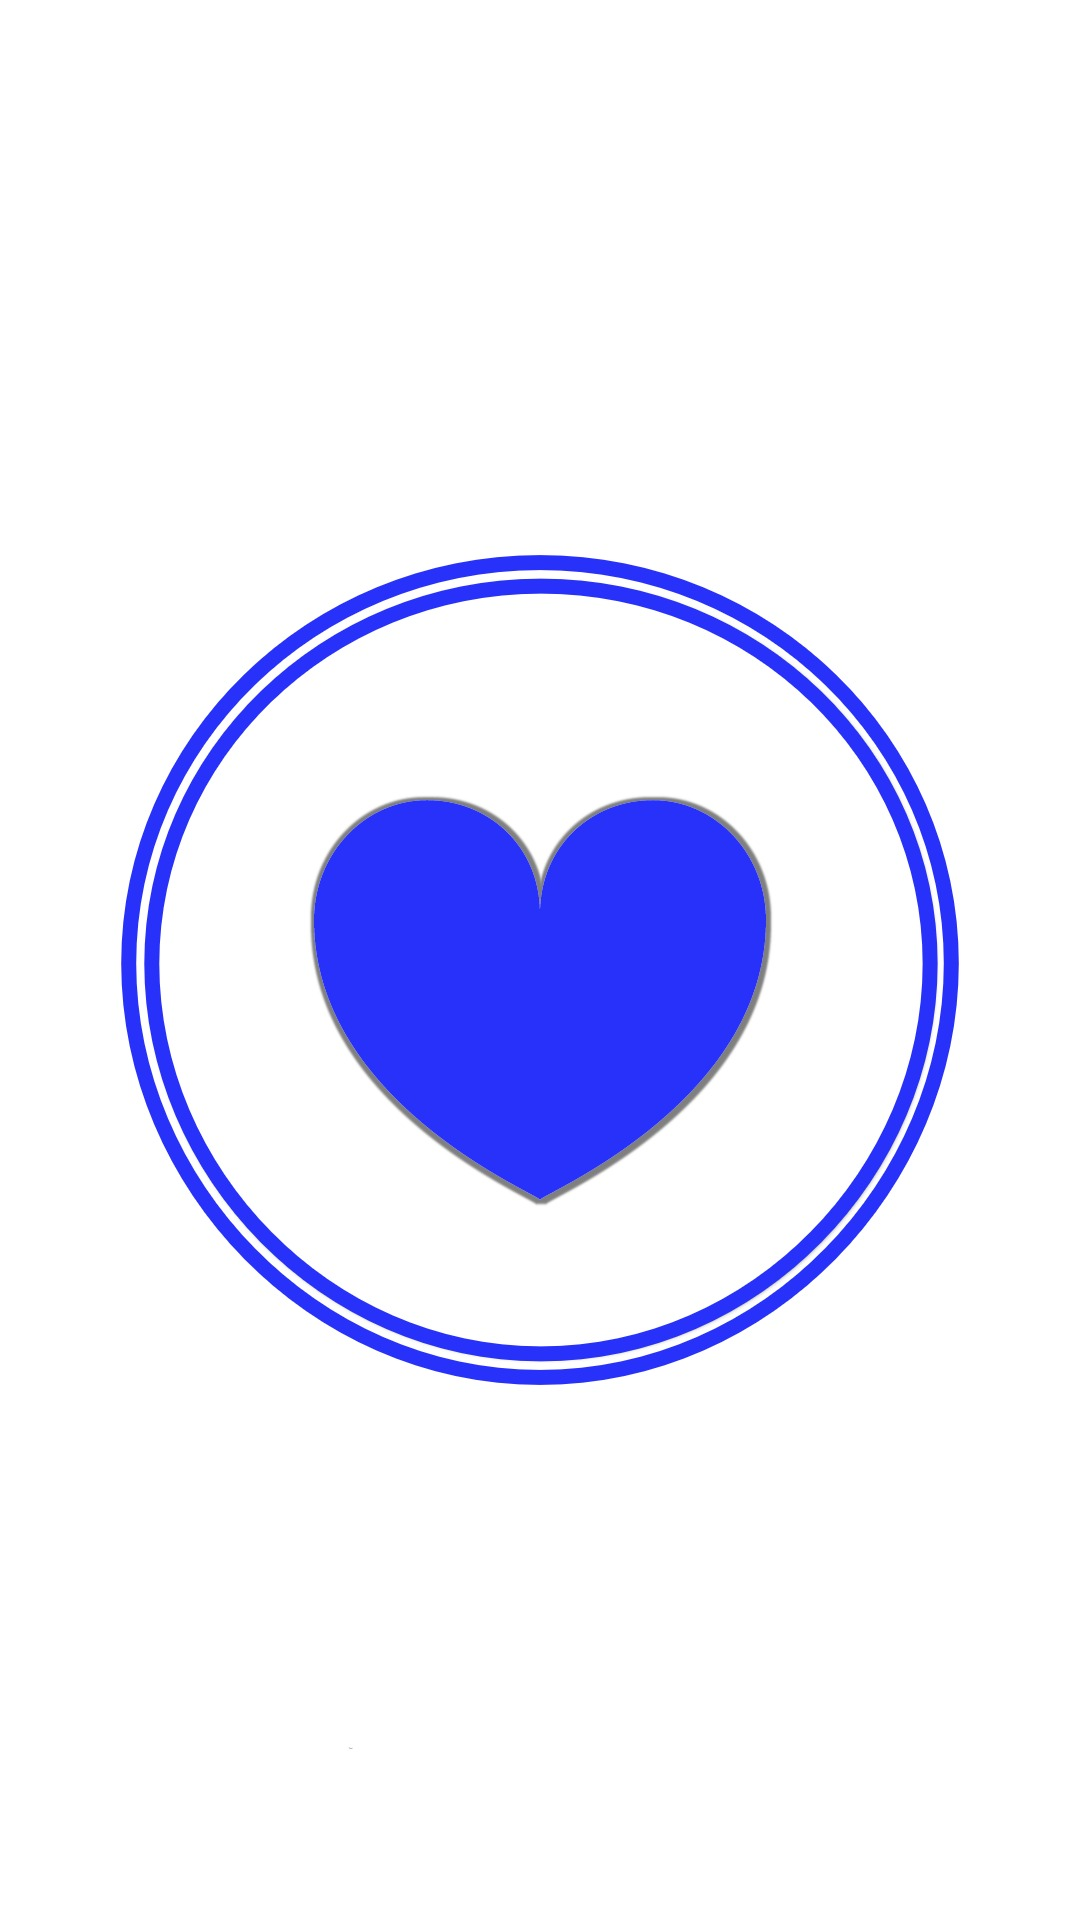 Instagram-cover-heart-bluewhite.jpg